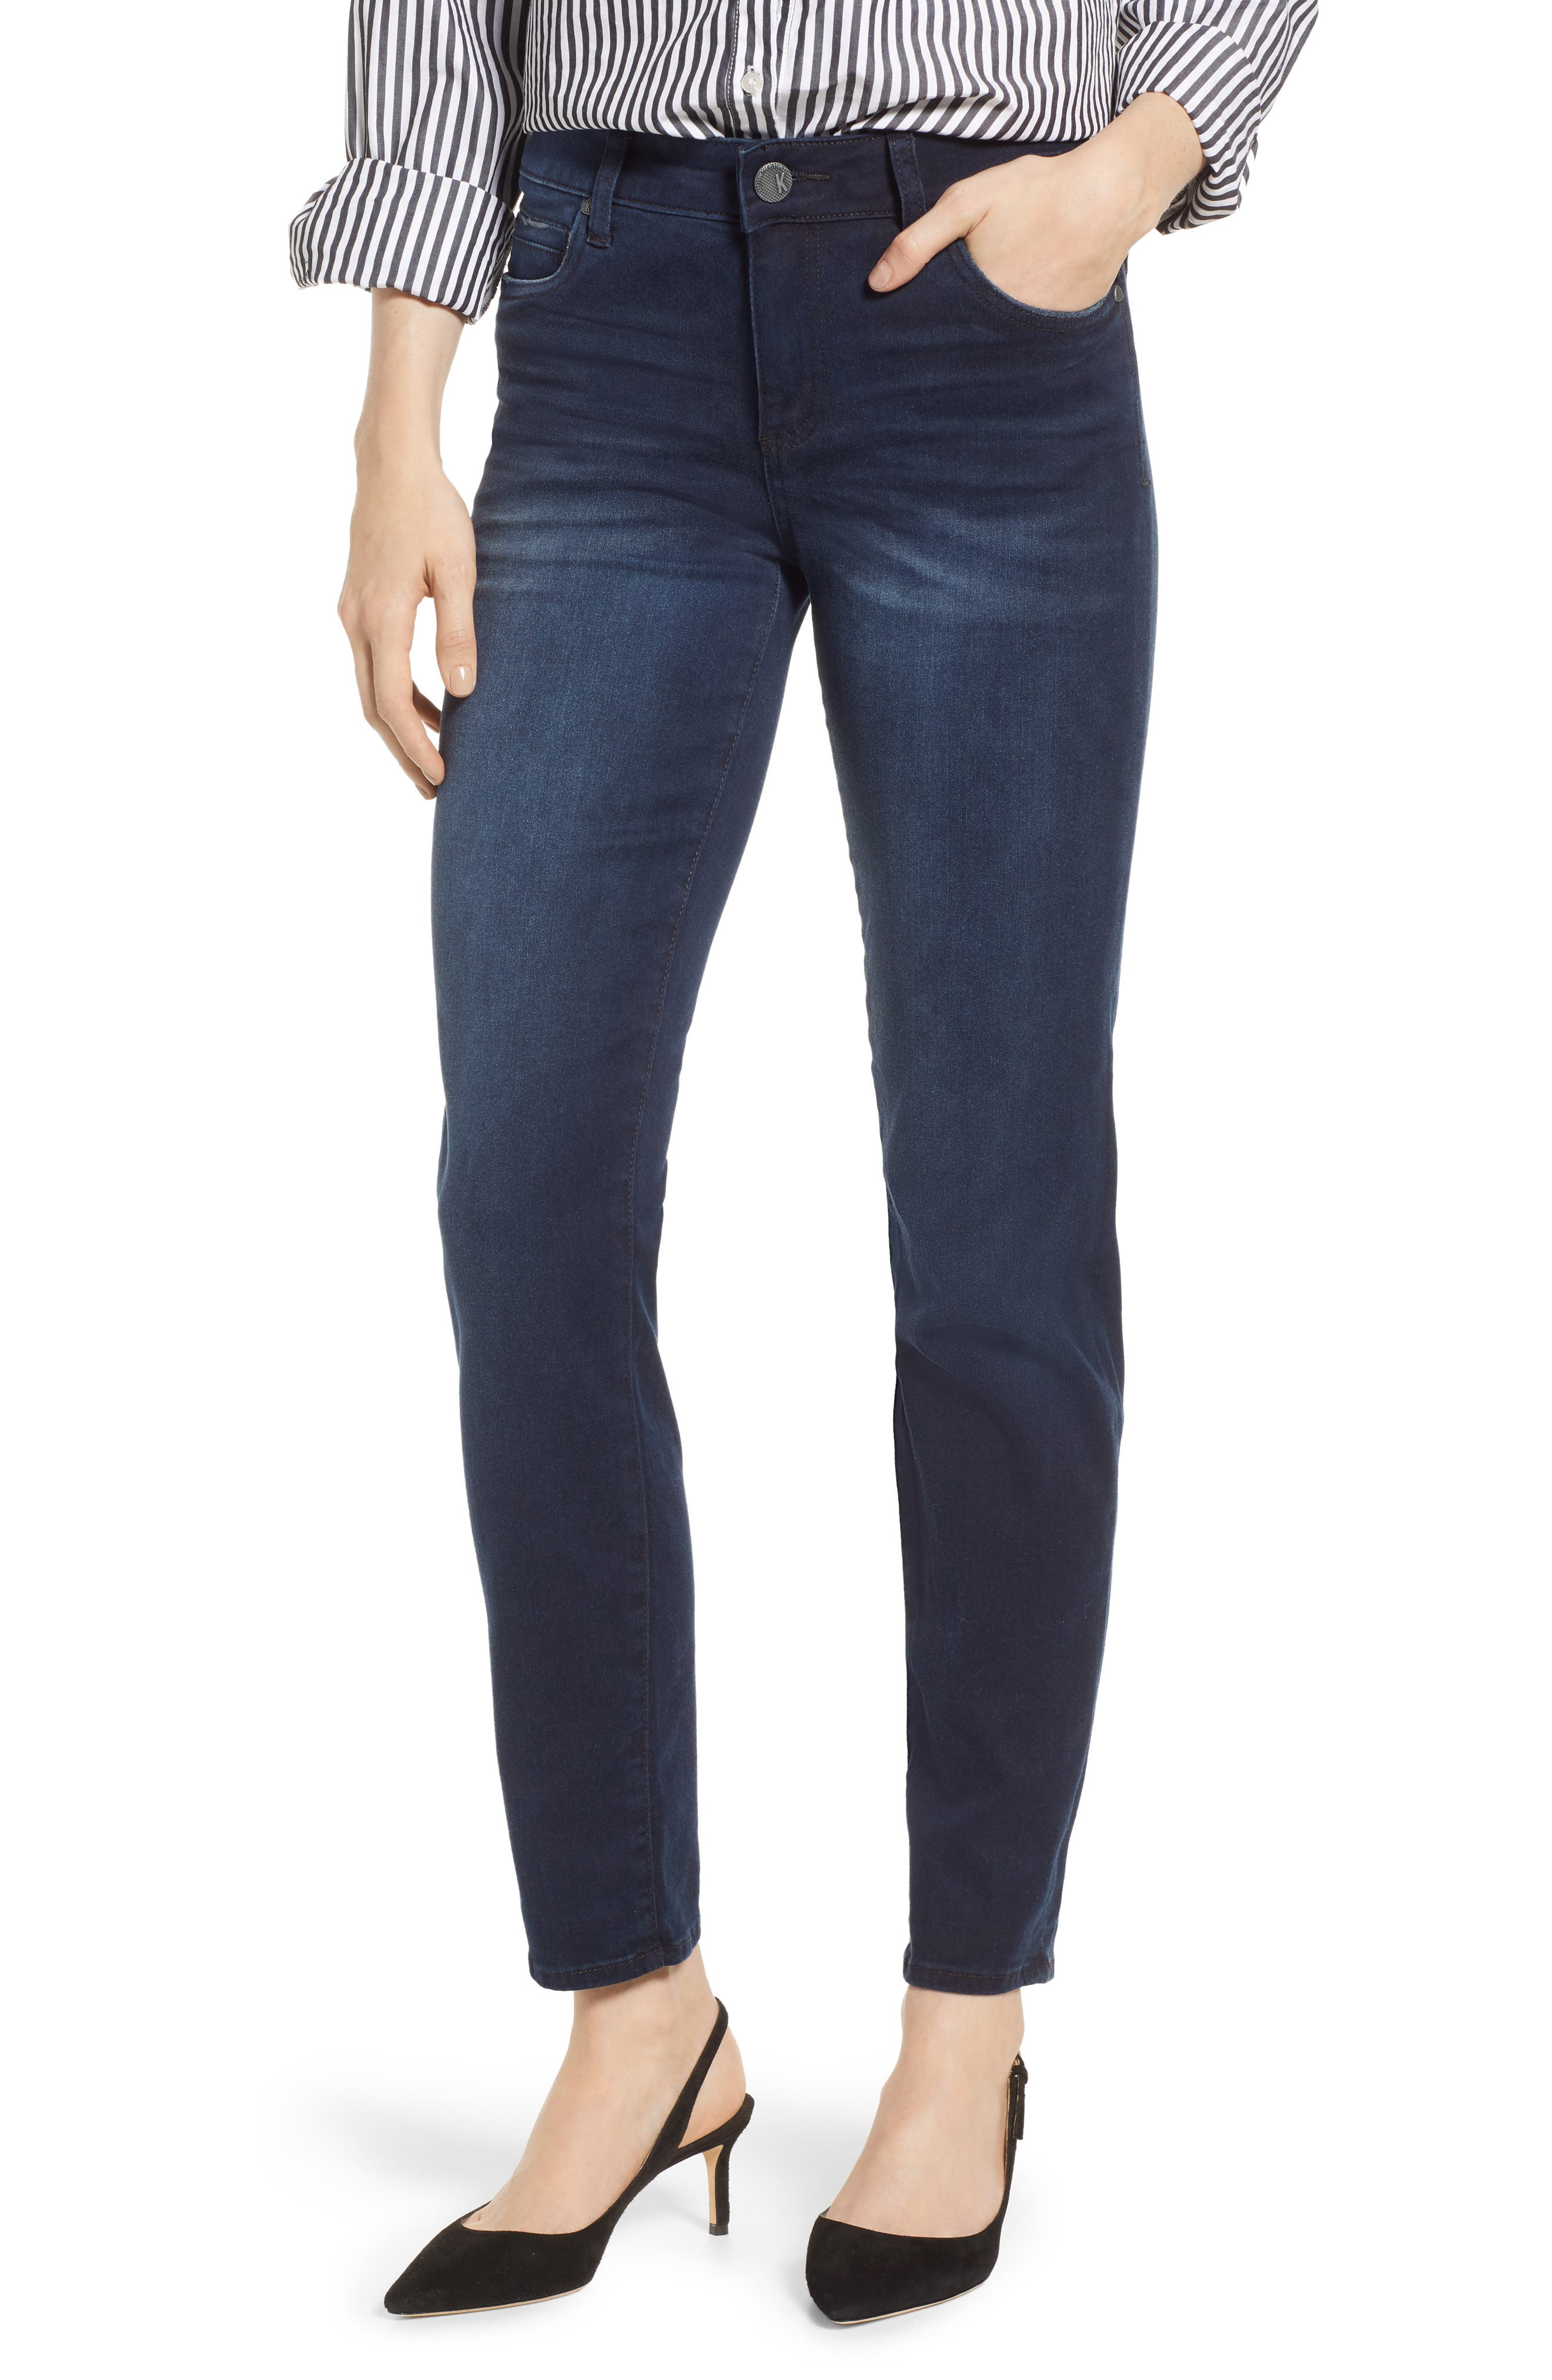 KUT FROM THE KLOTH Diana Skinny Jeans, Main, color, ART W/ EURO BASE WASH